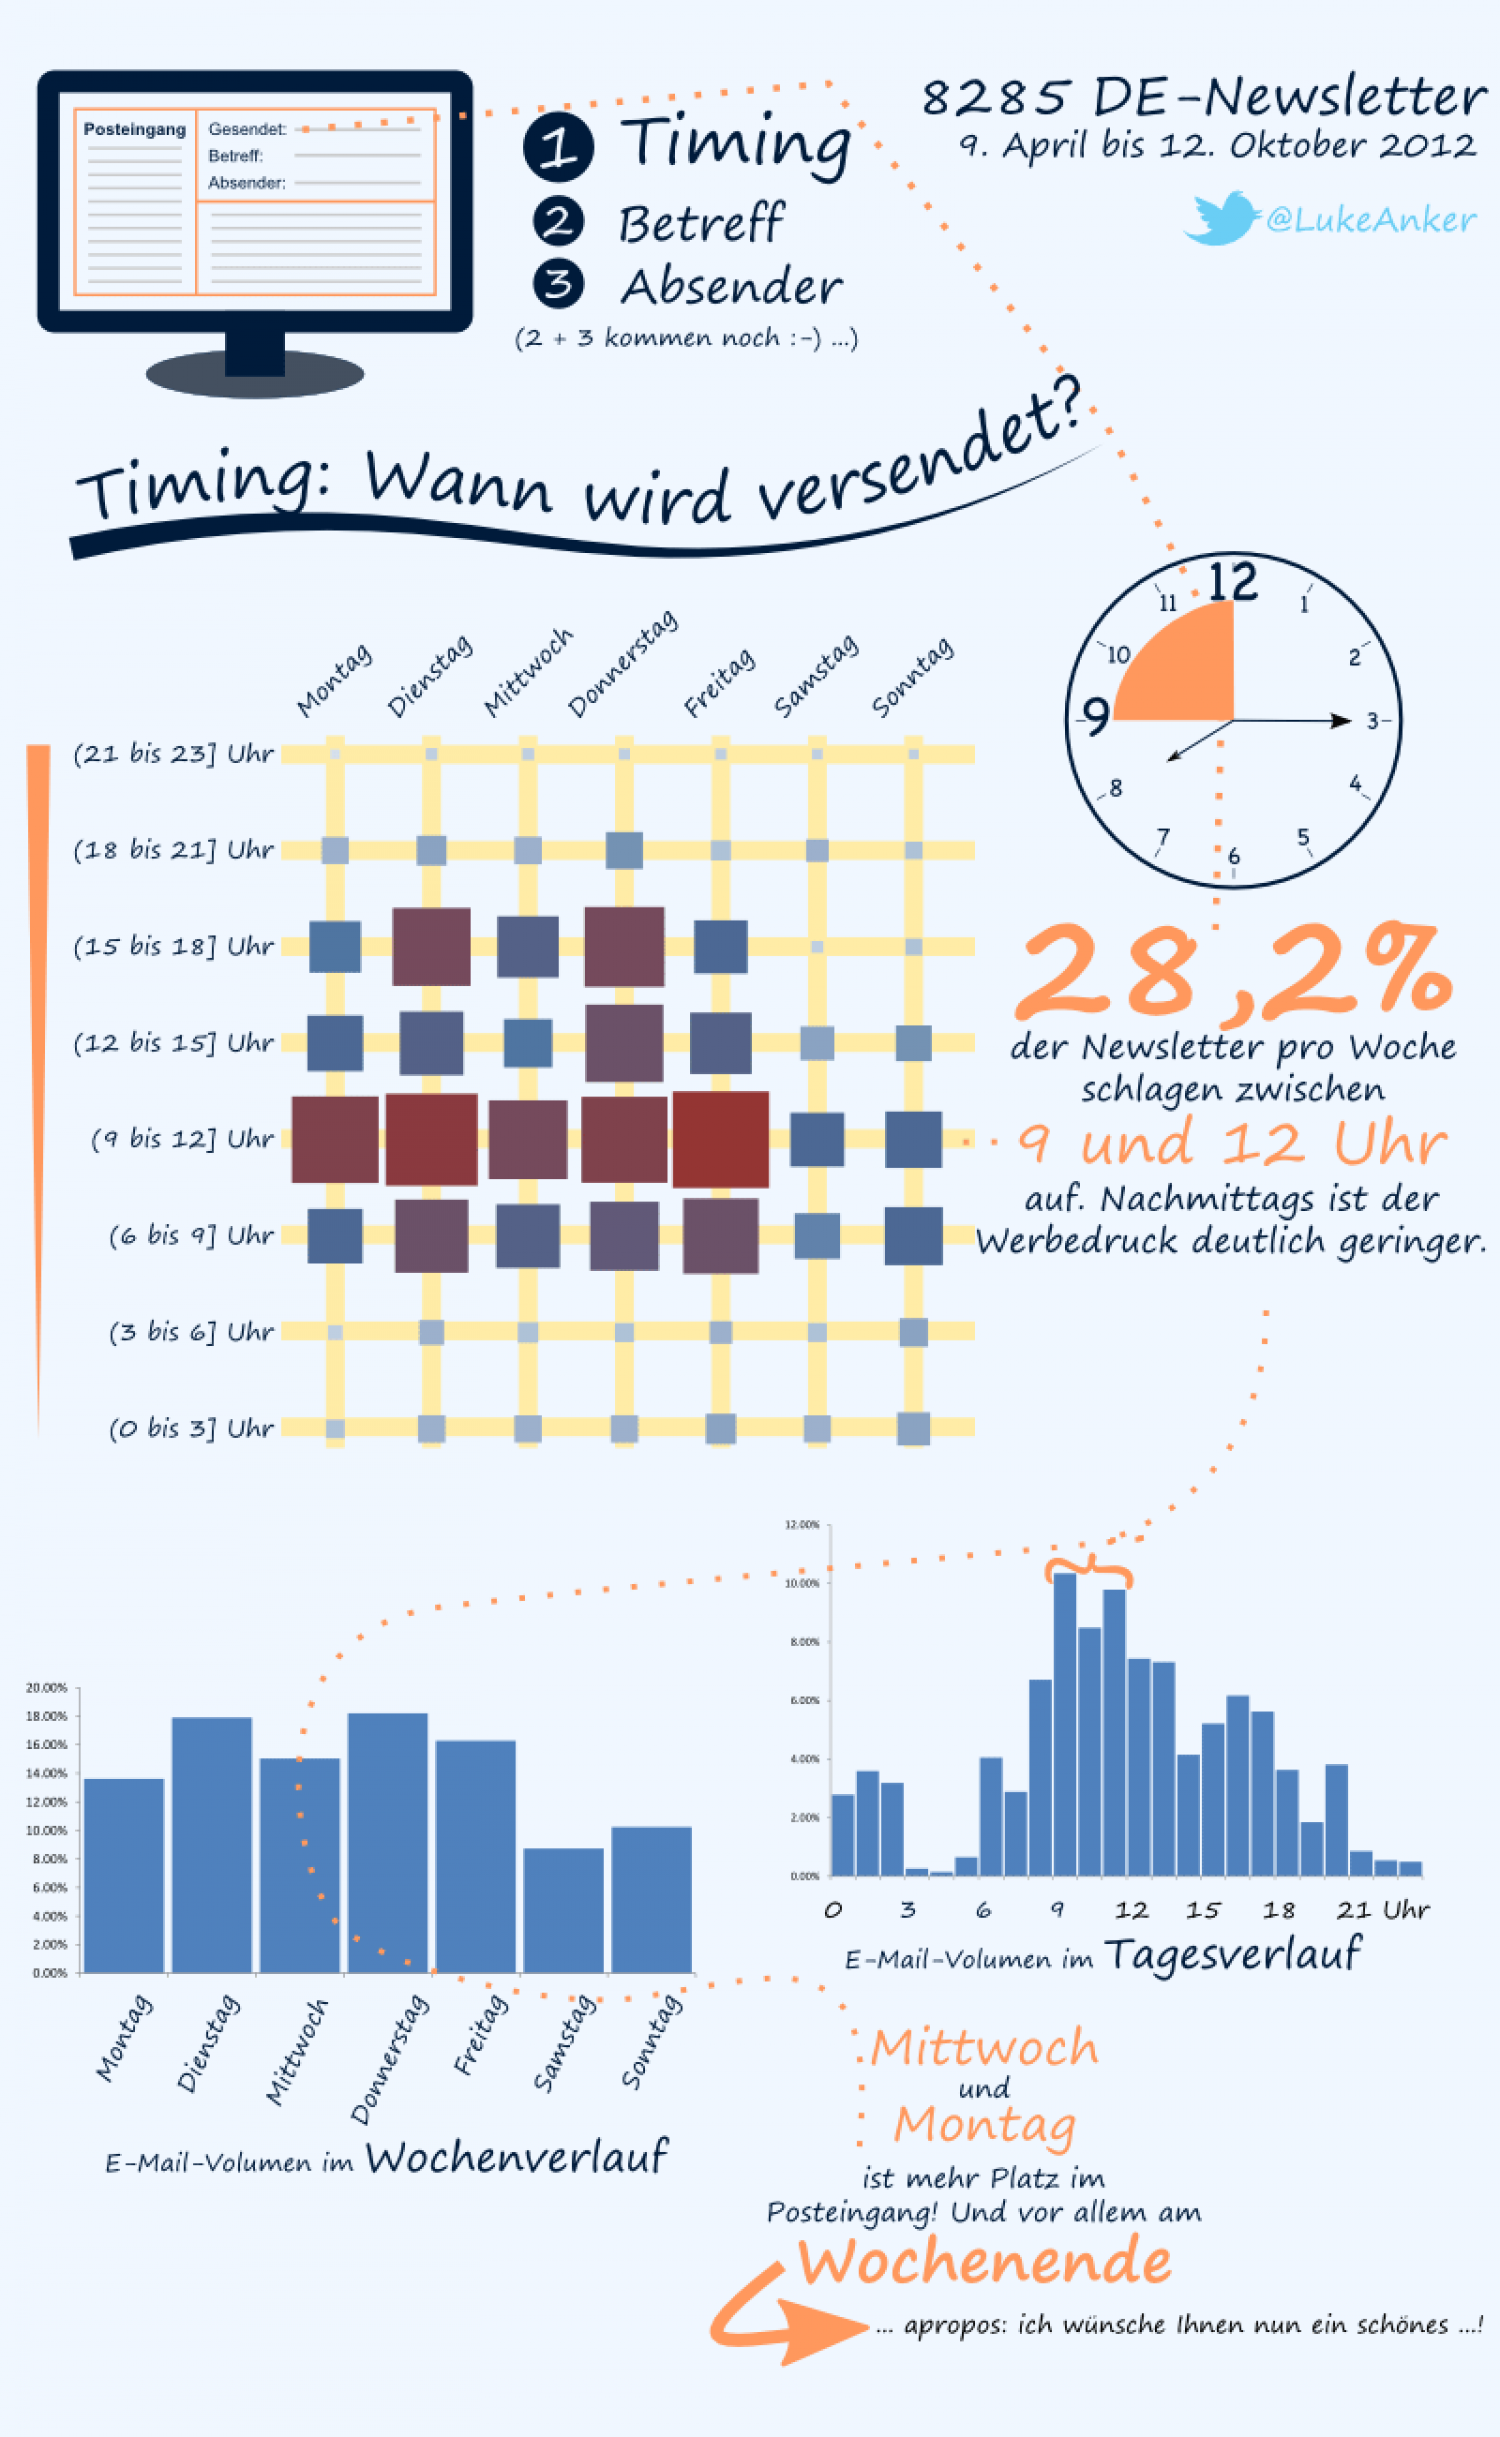 Newsletter timing Infographic